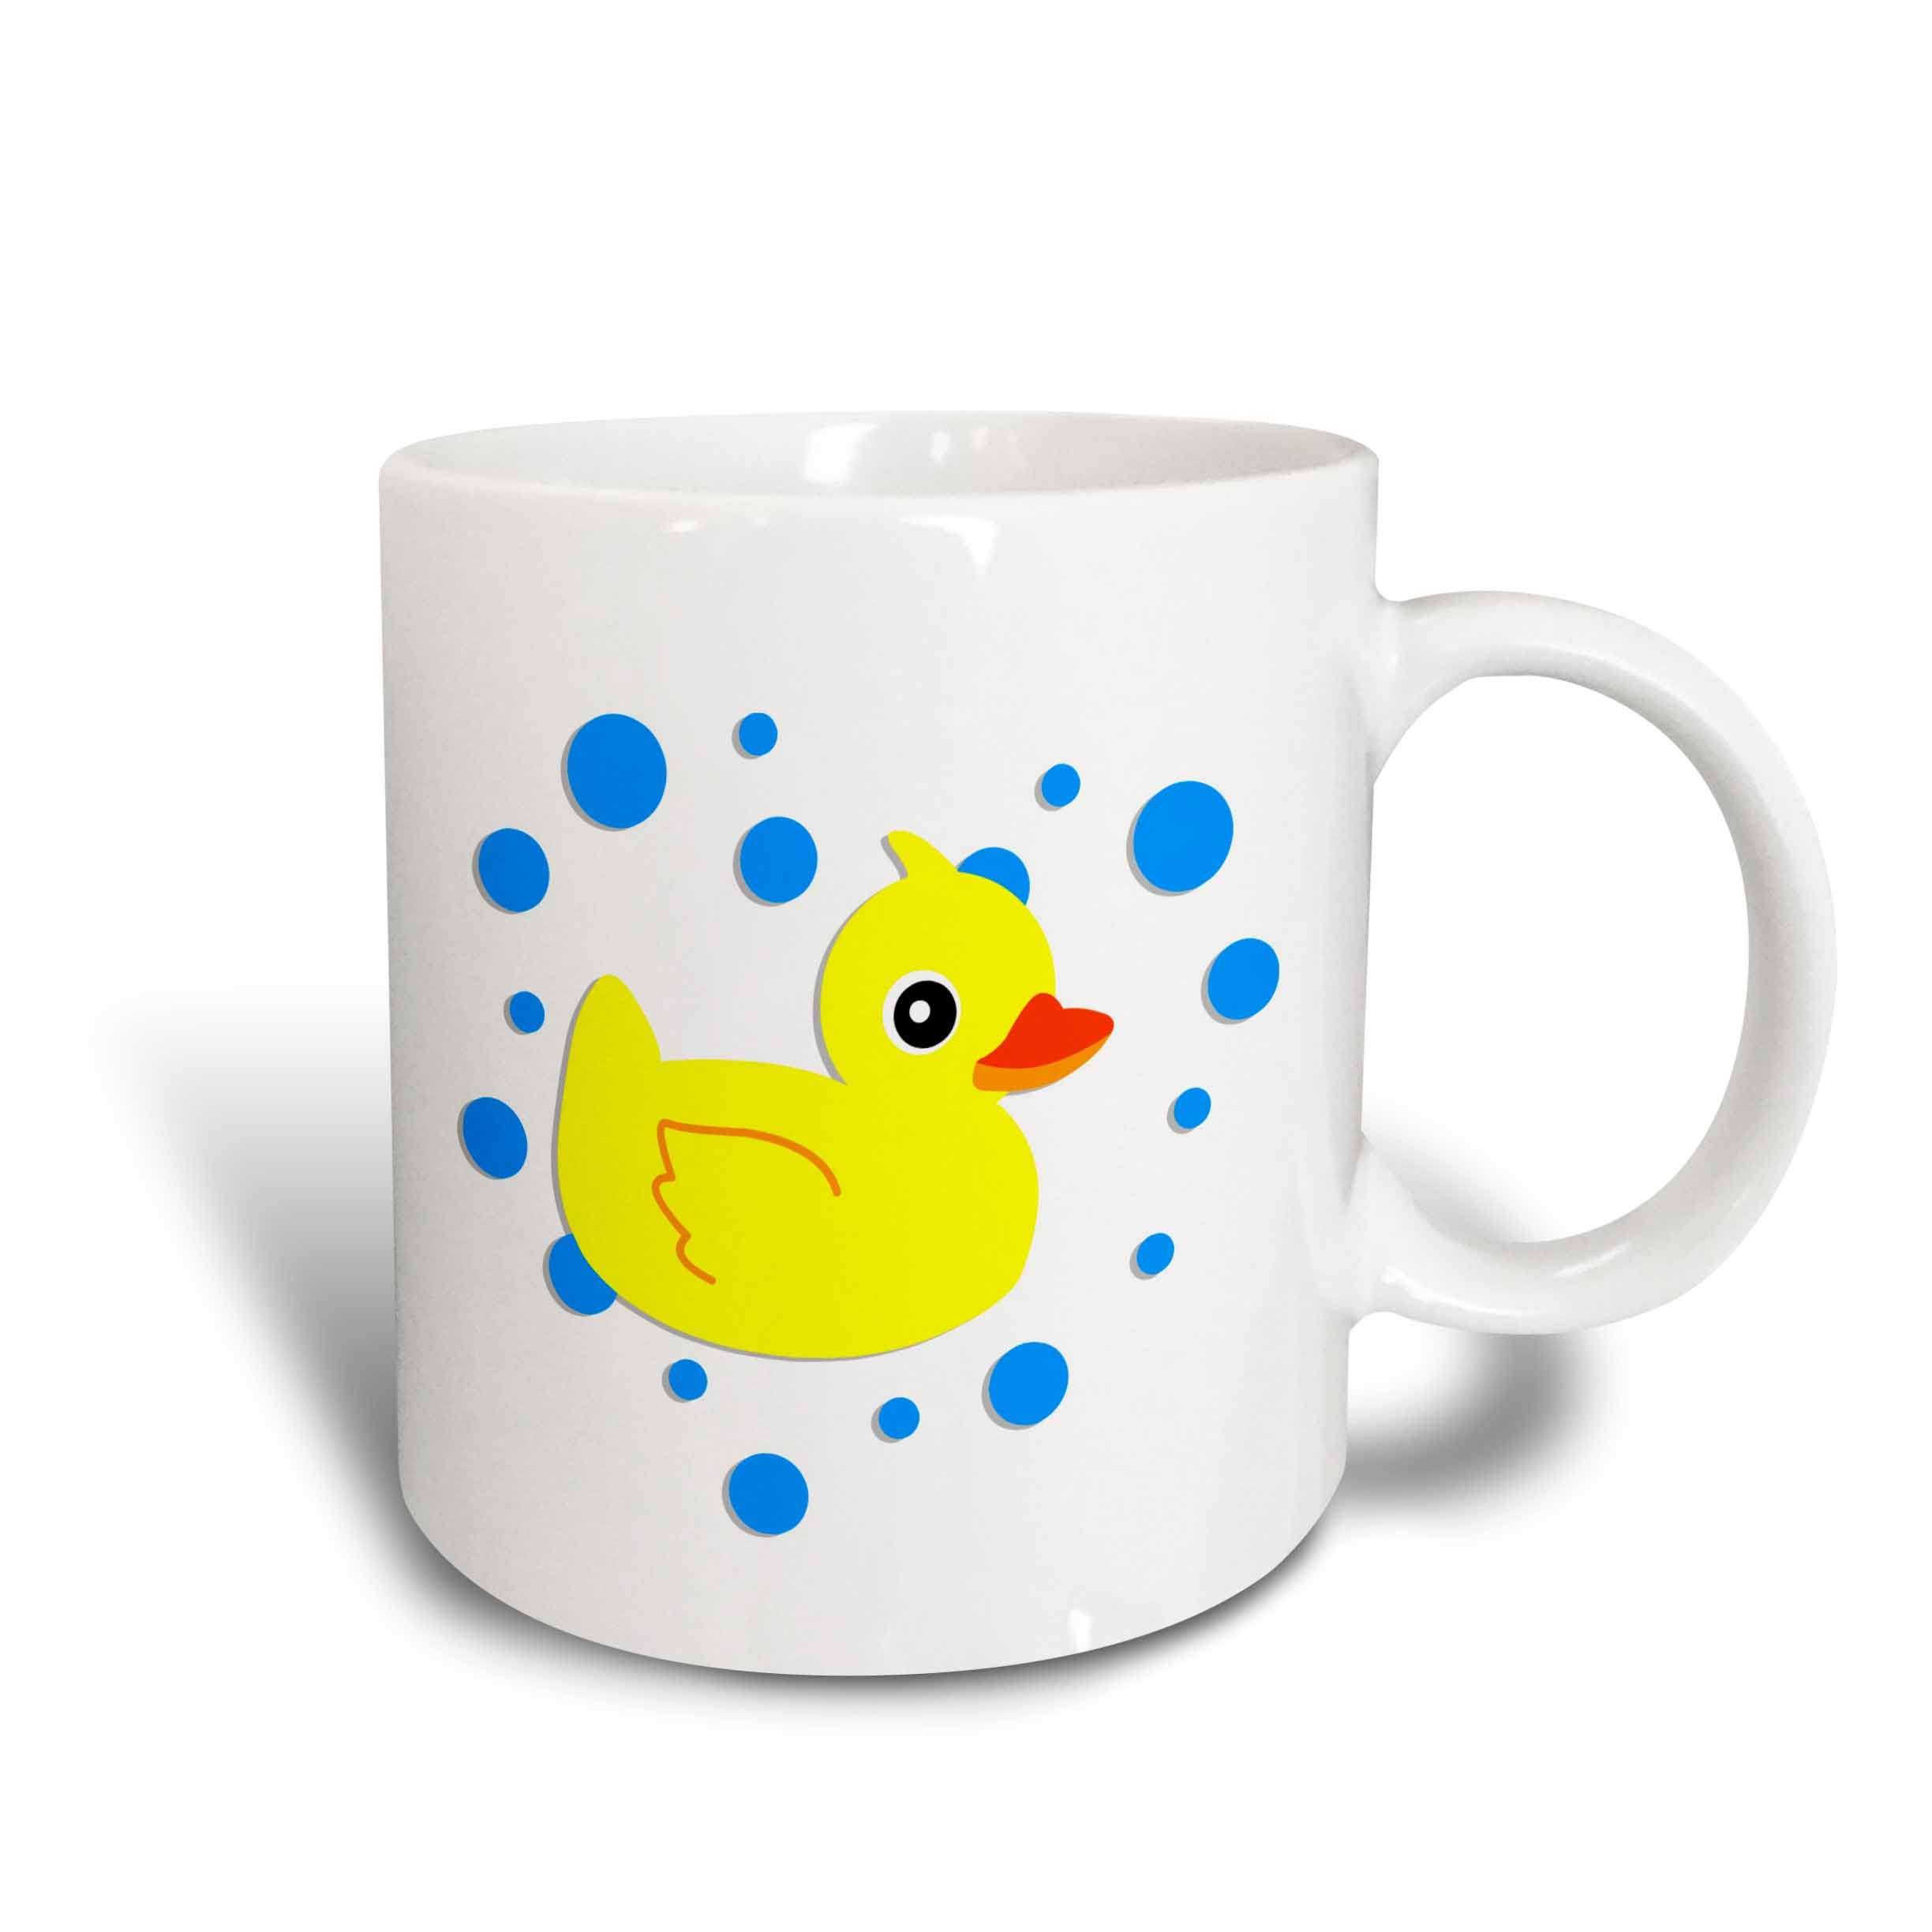 3d Rose 3drose Cute Baby Ducky Yellow Ducky, Ceramic Mug, 15 - ounce